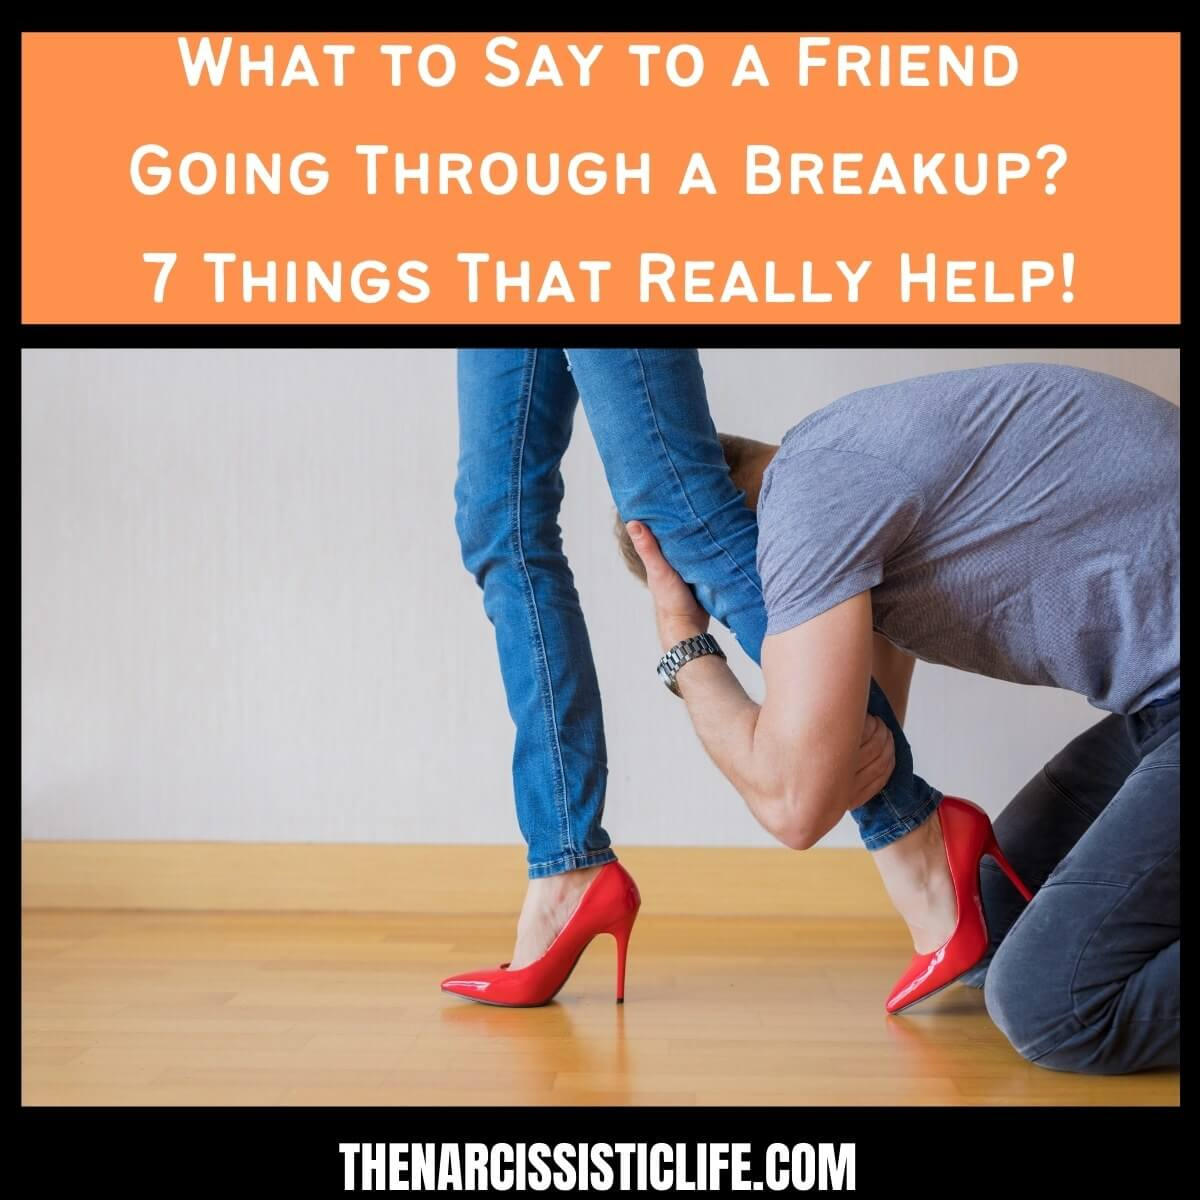 What to Say to a Friend Going Through a Breakup?